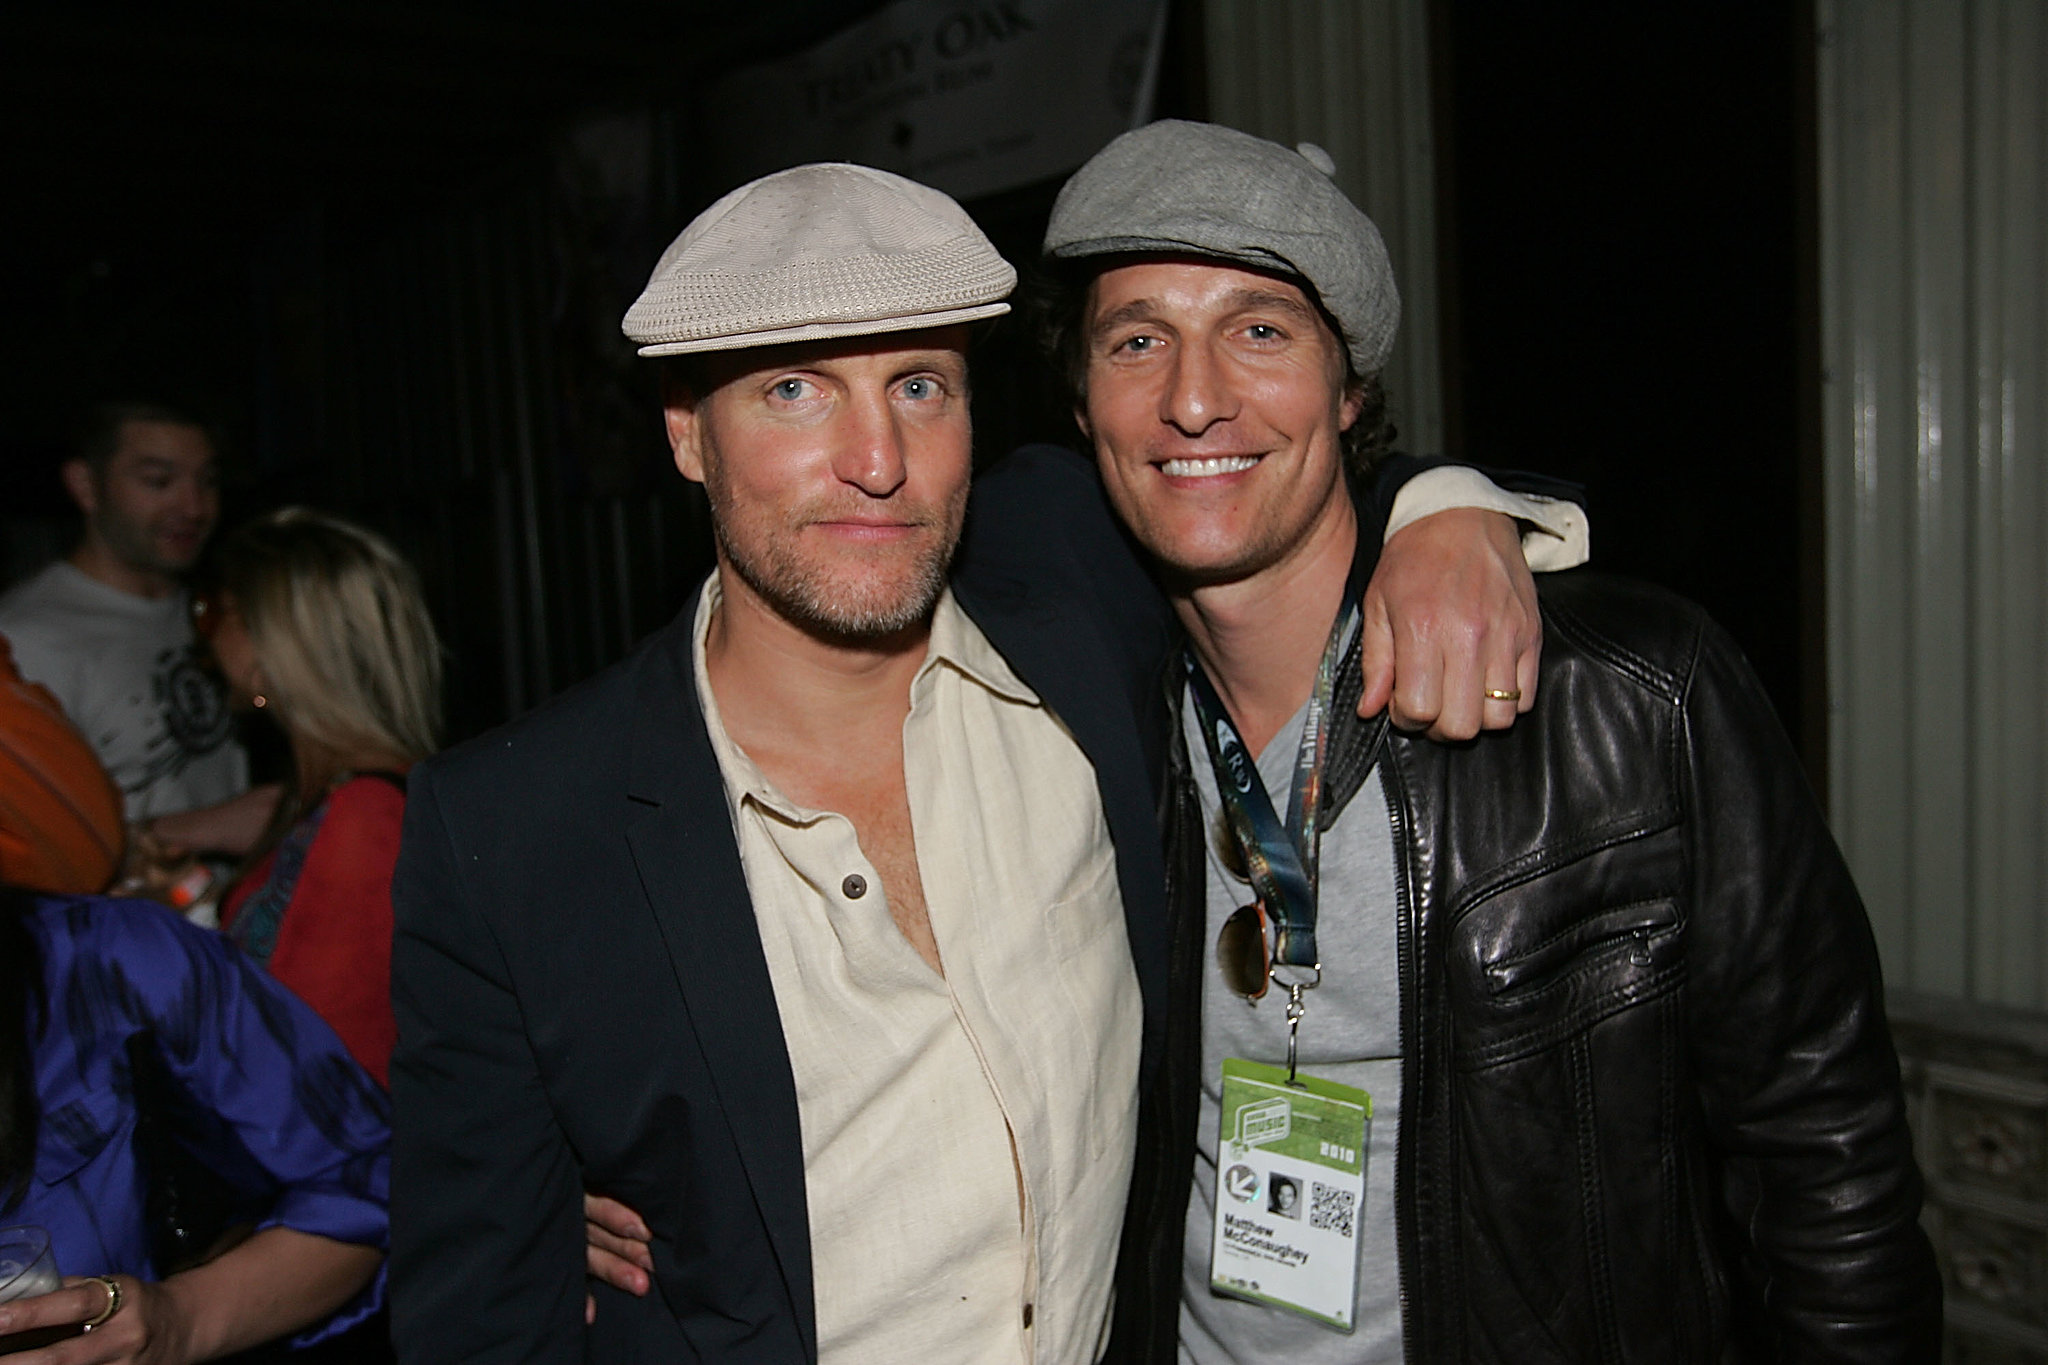 Woody Harrelson and Matthew McConaughey have been longtime friends, and they recently took their relationship to the small screen. Woody and MM were TV costars for the first time in HBO's True Detective, after working together on the big screen in both Edtv and Surfer, Dude.